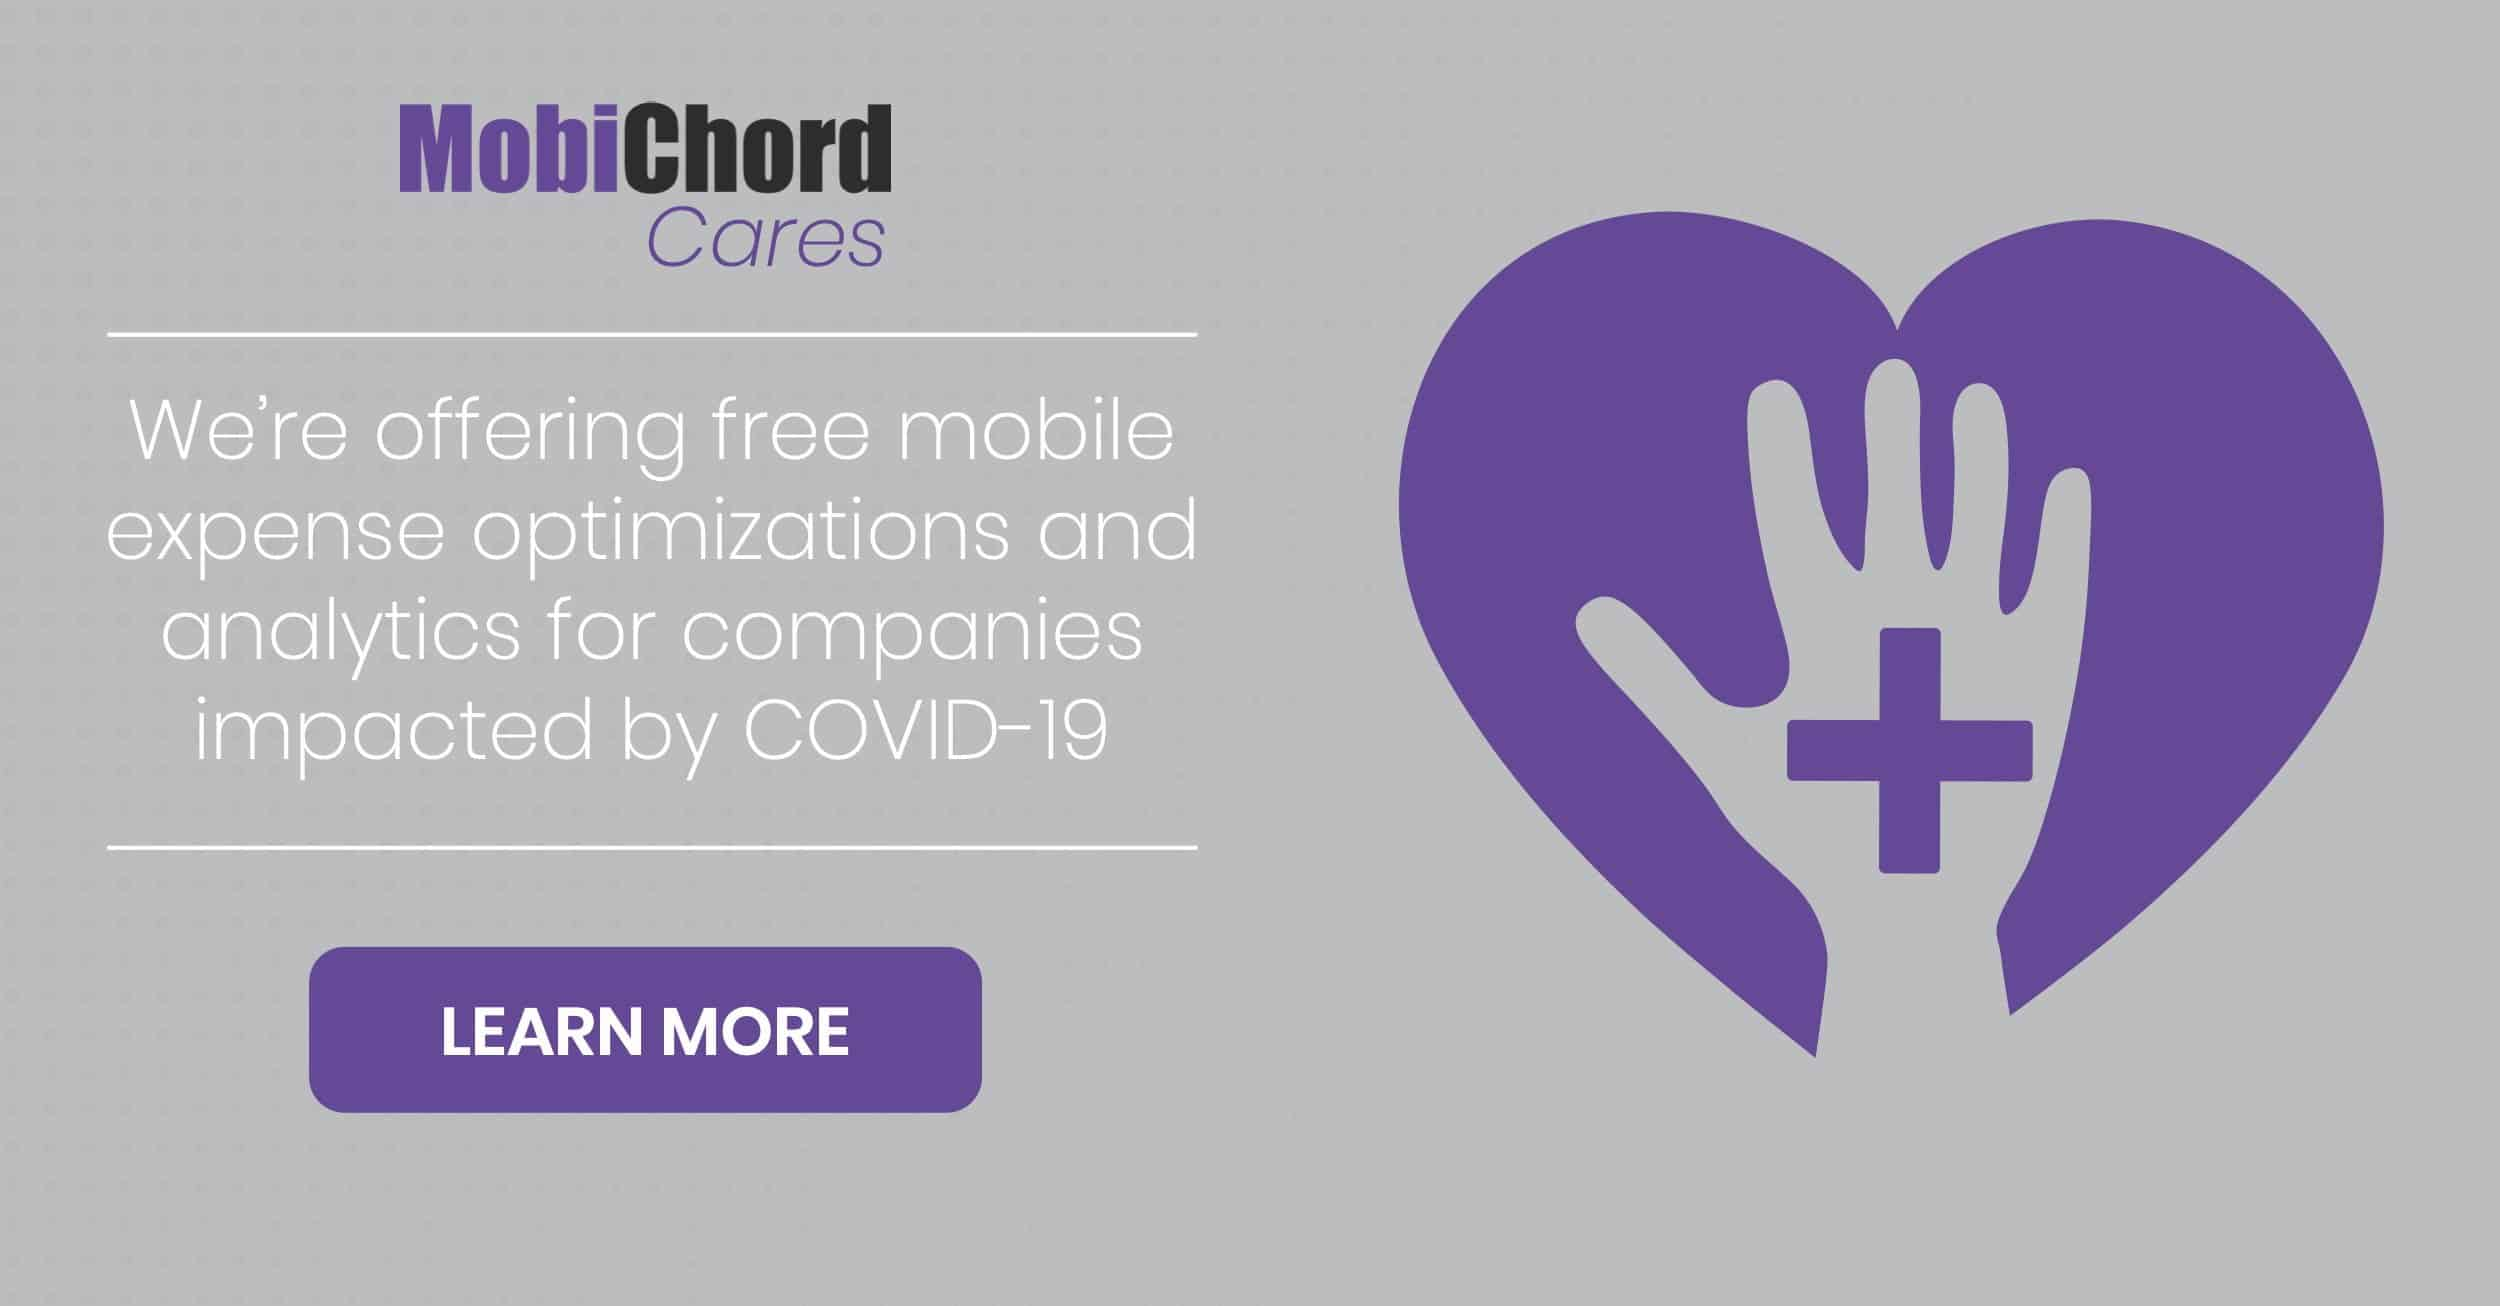 MobiChord Offers Free Mobile Analytics/Cost Optimizations to Ease COVID-19 Costs